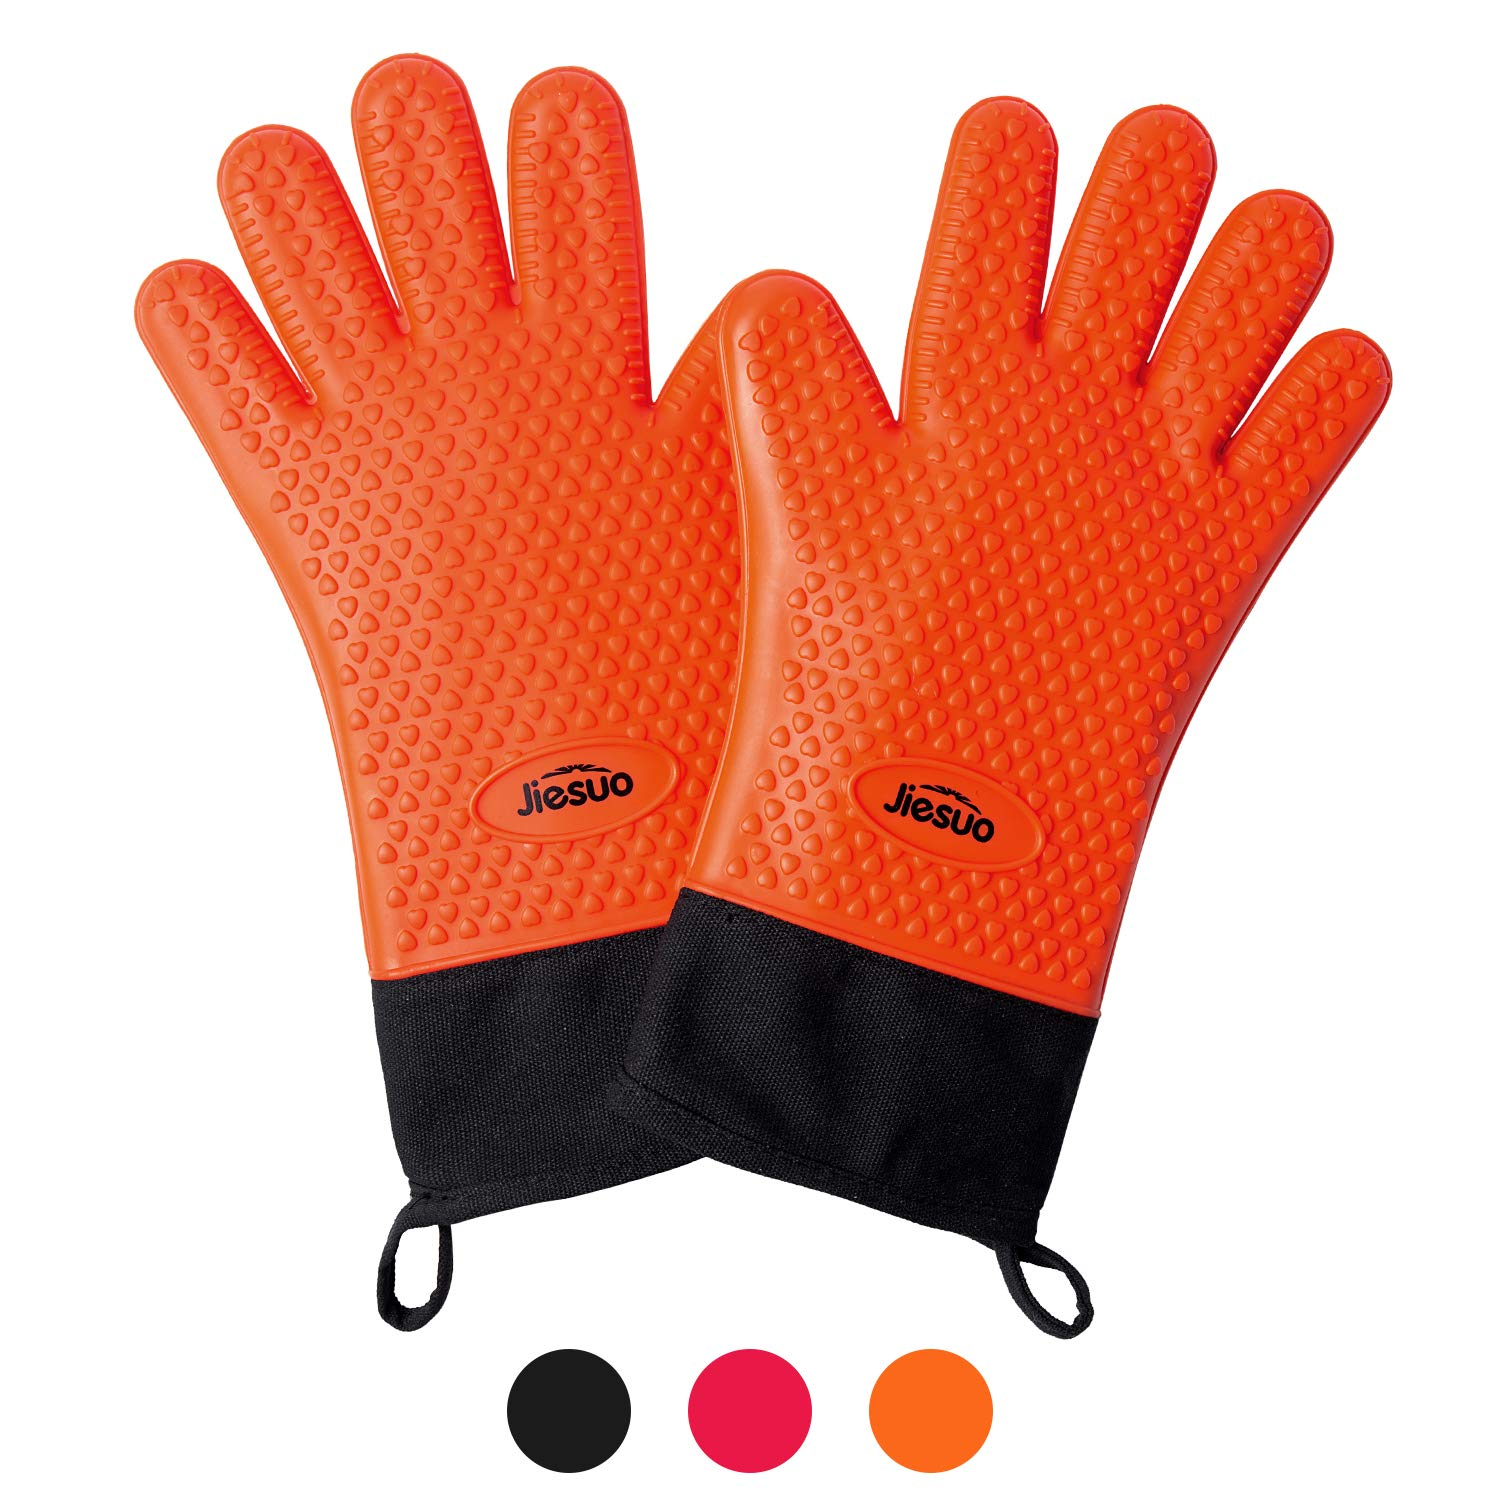 JIESUO Silicone BBQ Gloves Grill Mitts, Heat Resistant Cooking Gloves for Grilling, FDA Grade Waterproof Oven Mitts